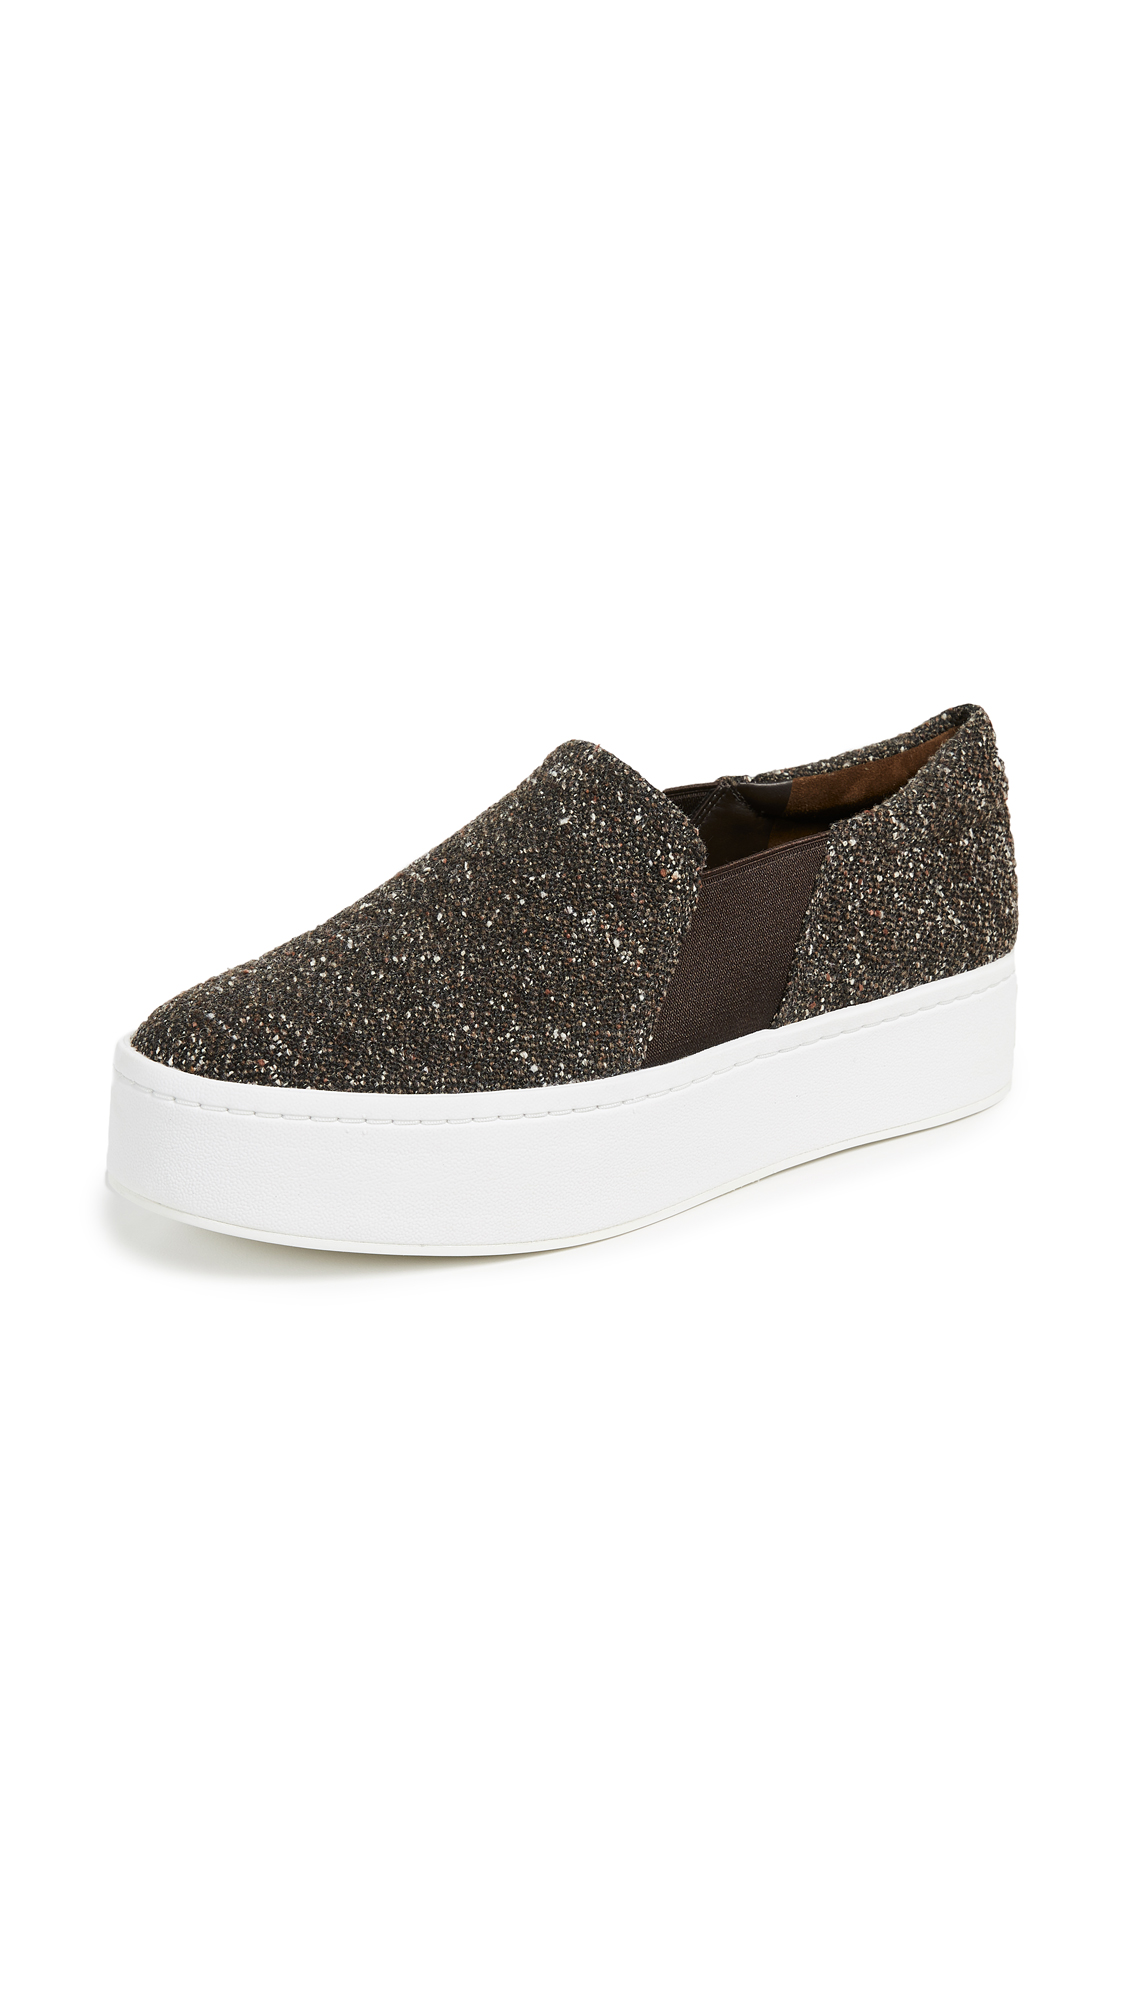 Vince Warren Slip On Sneakers - Umber